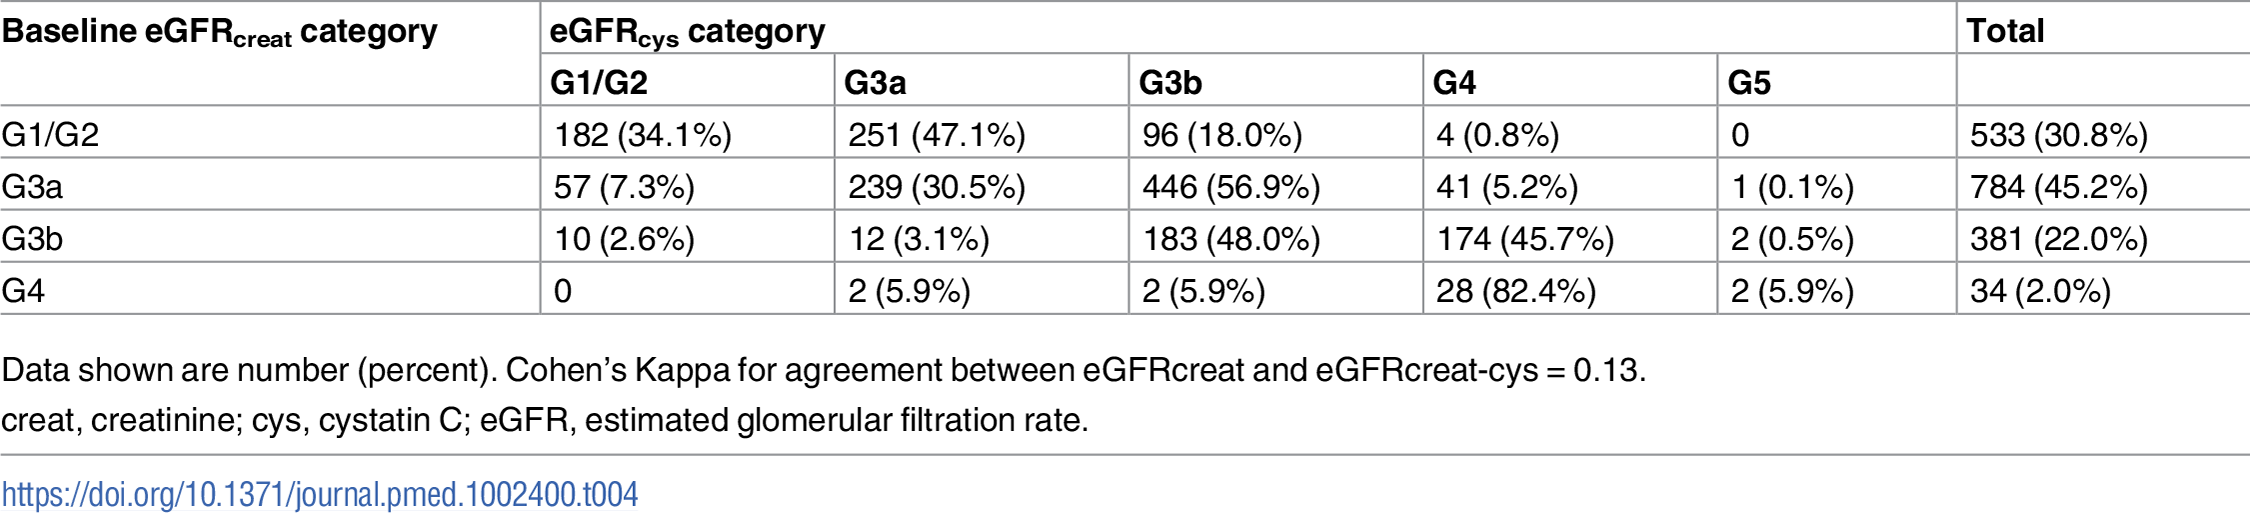 Baseline eGFRcreat category and reclassification using eGFRcys in all study participants.